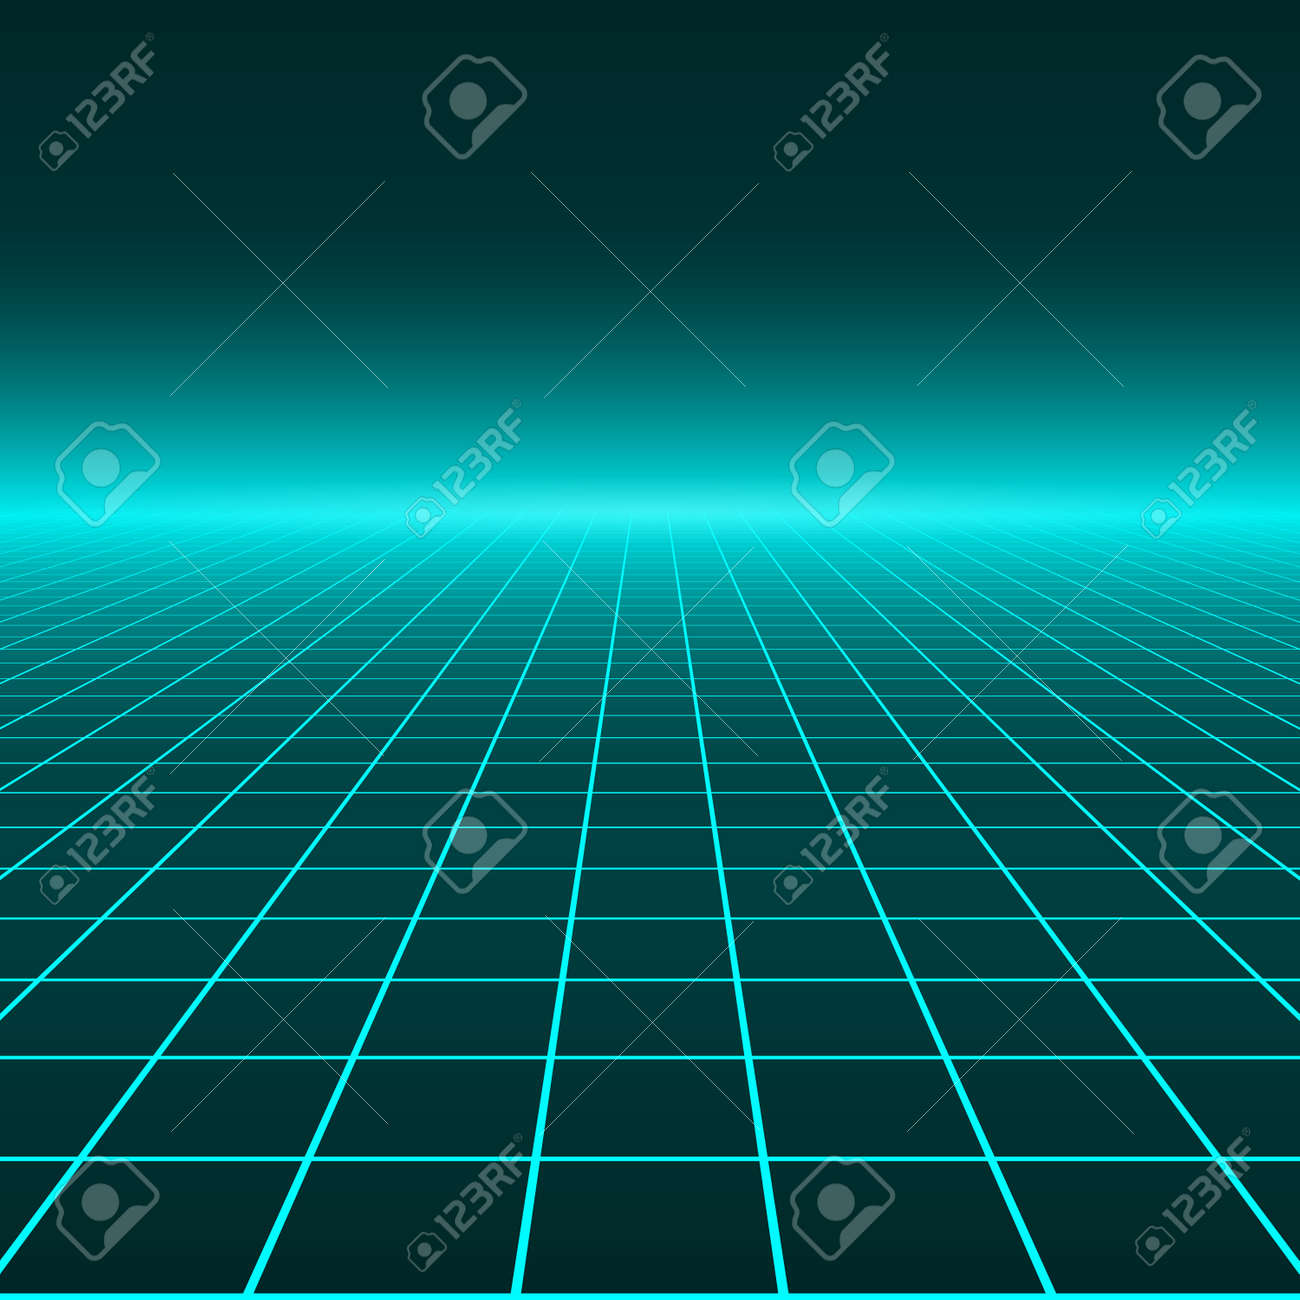 Vector perspective grid. Abstract retro background in 80s style. - 162325443